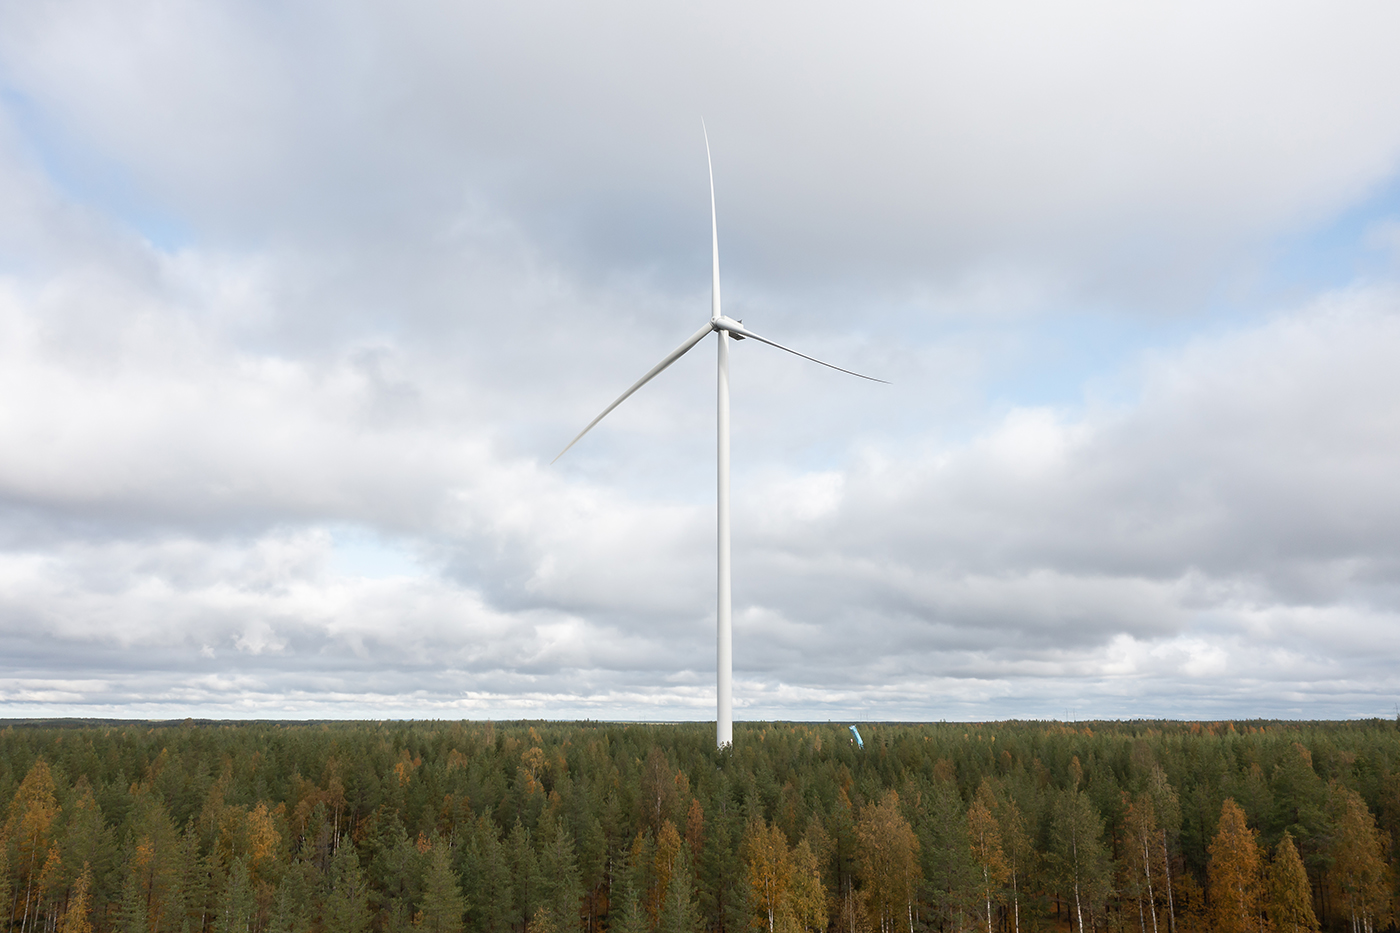 The first MLK wind turbine is up and running